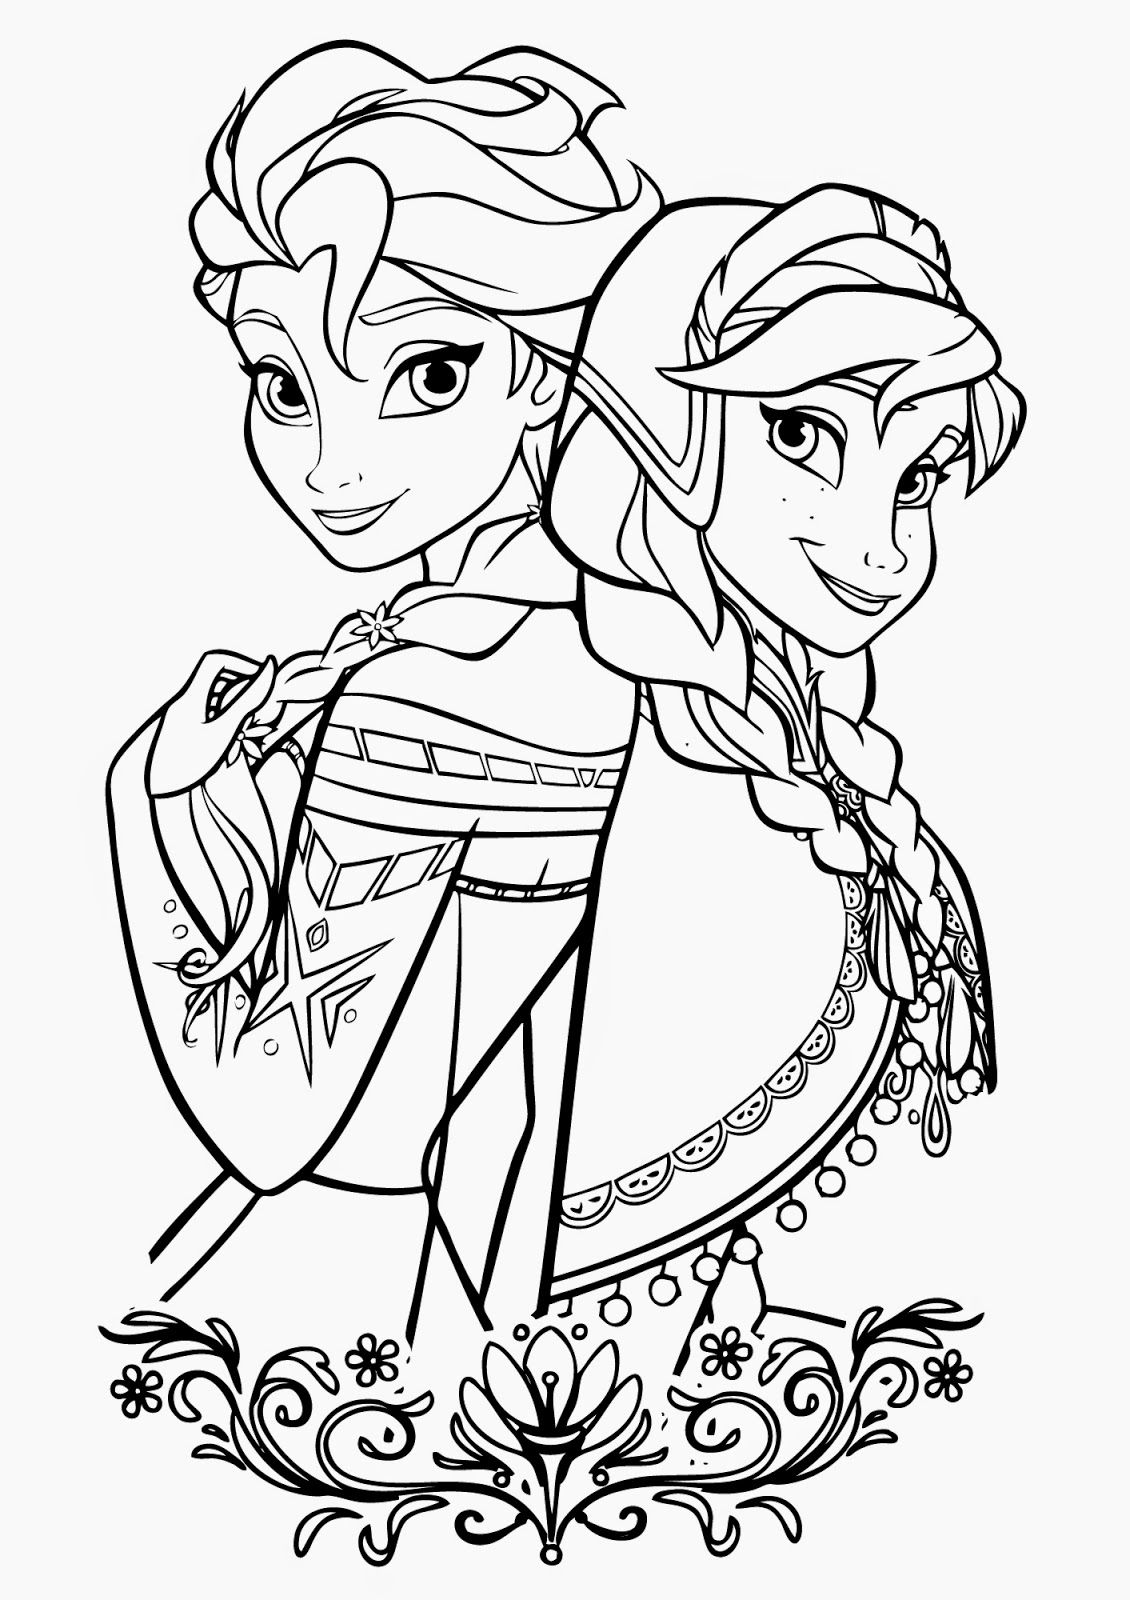 Frozen Coloring Sheets All Characters Famous Characters Walt Disney